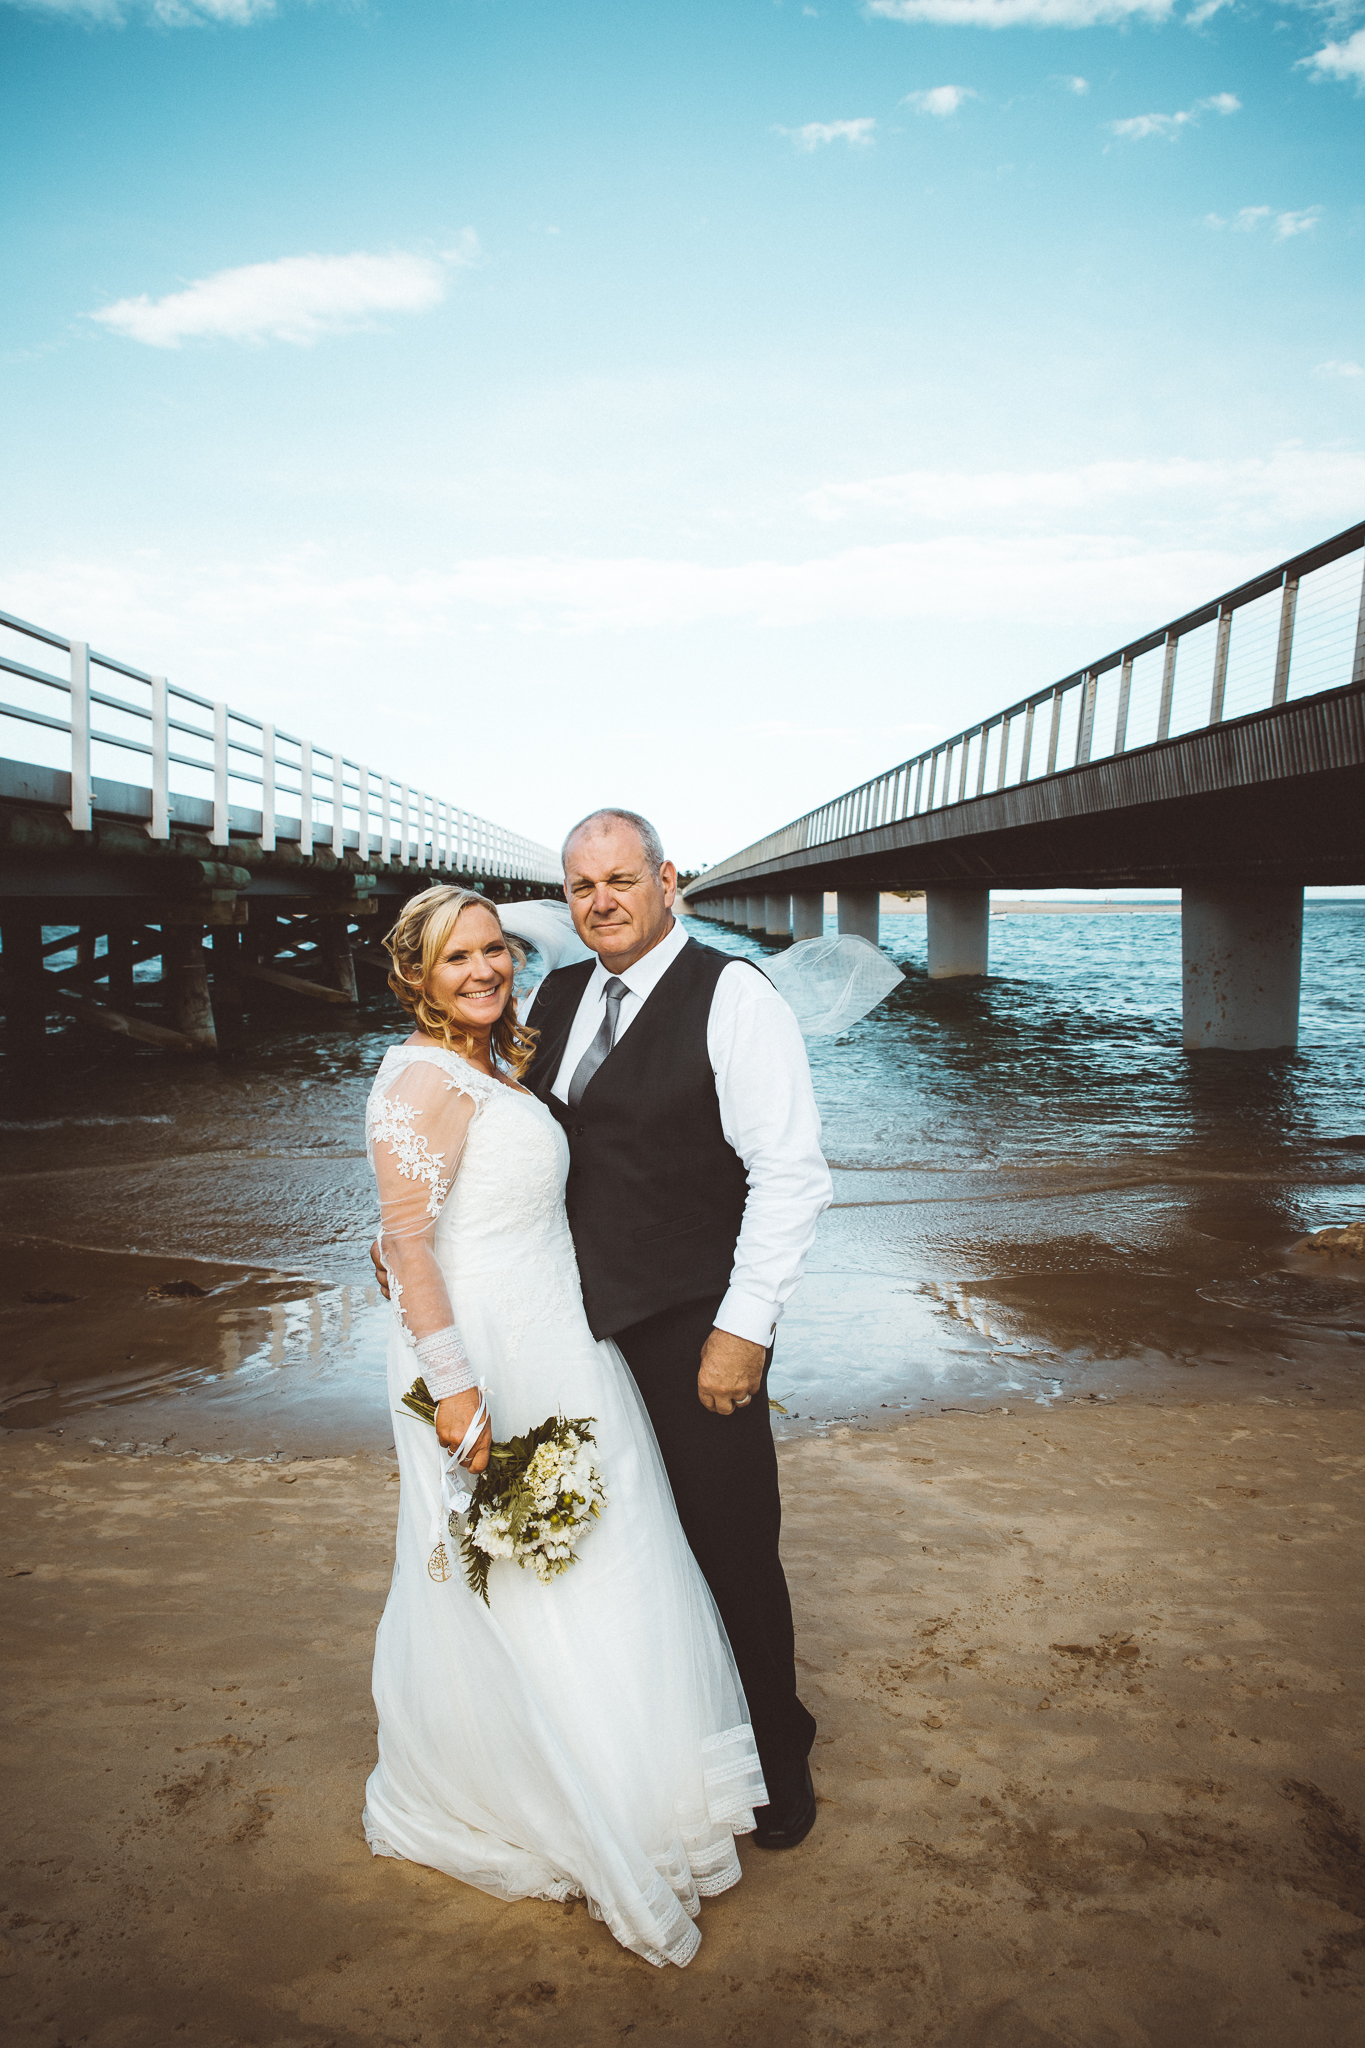 Bellarine wedding photographer